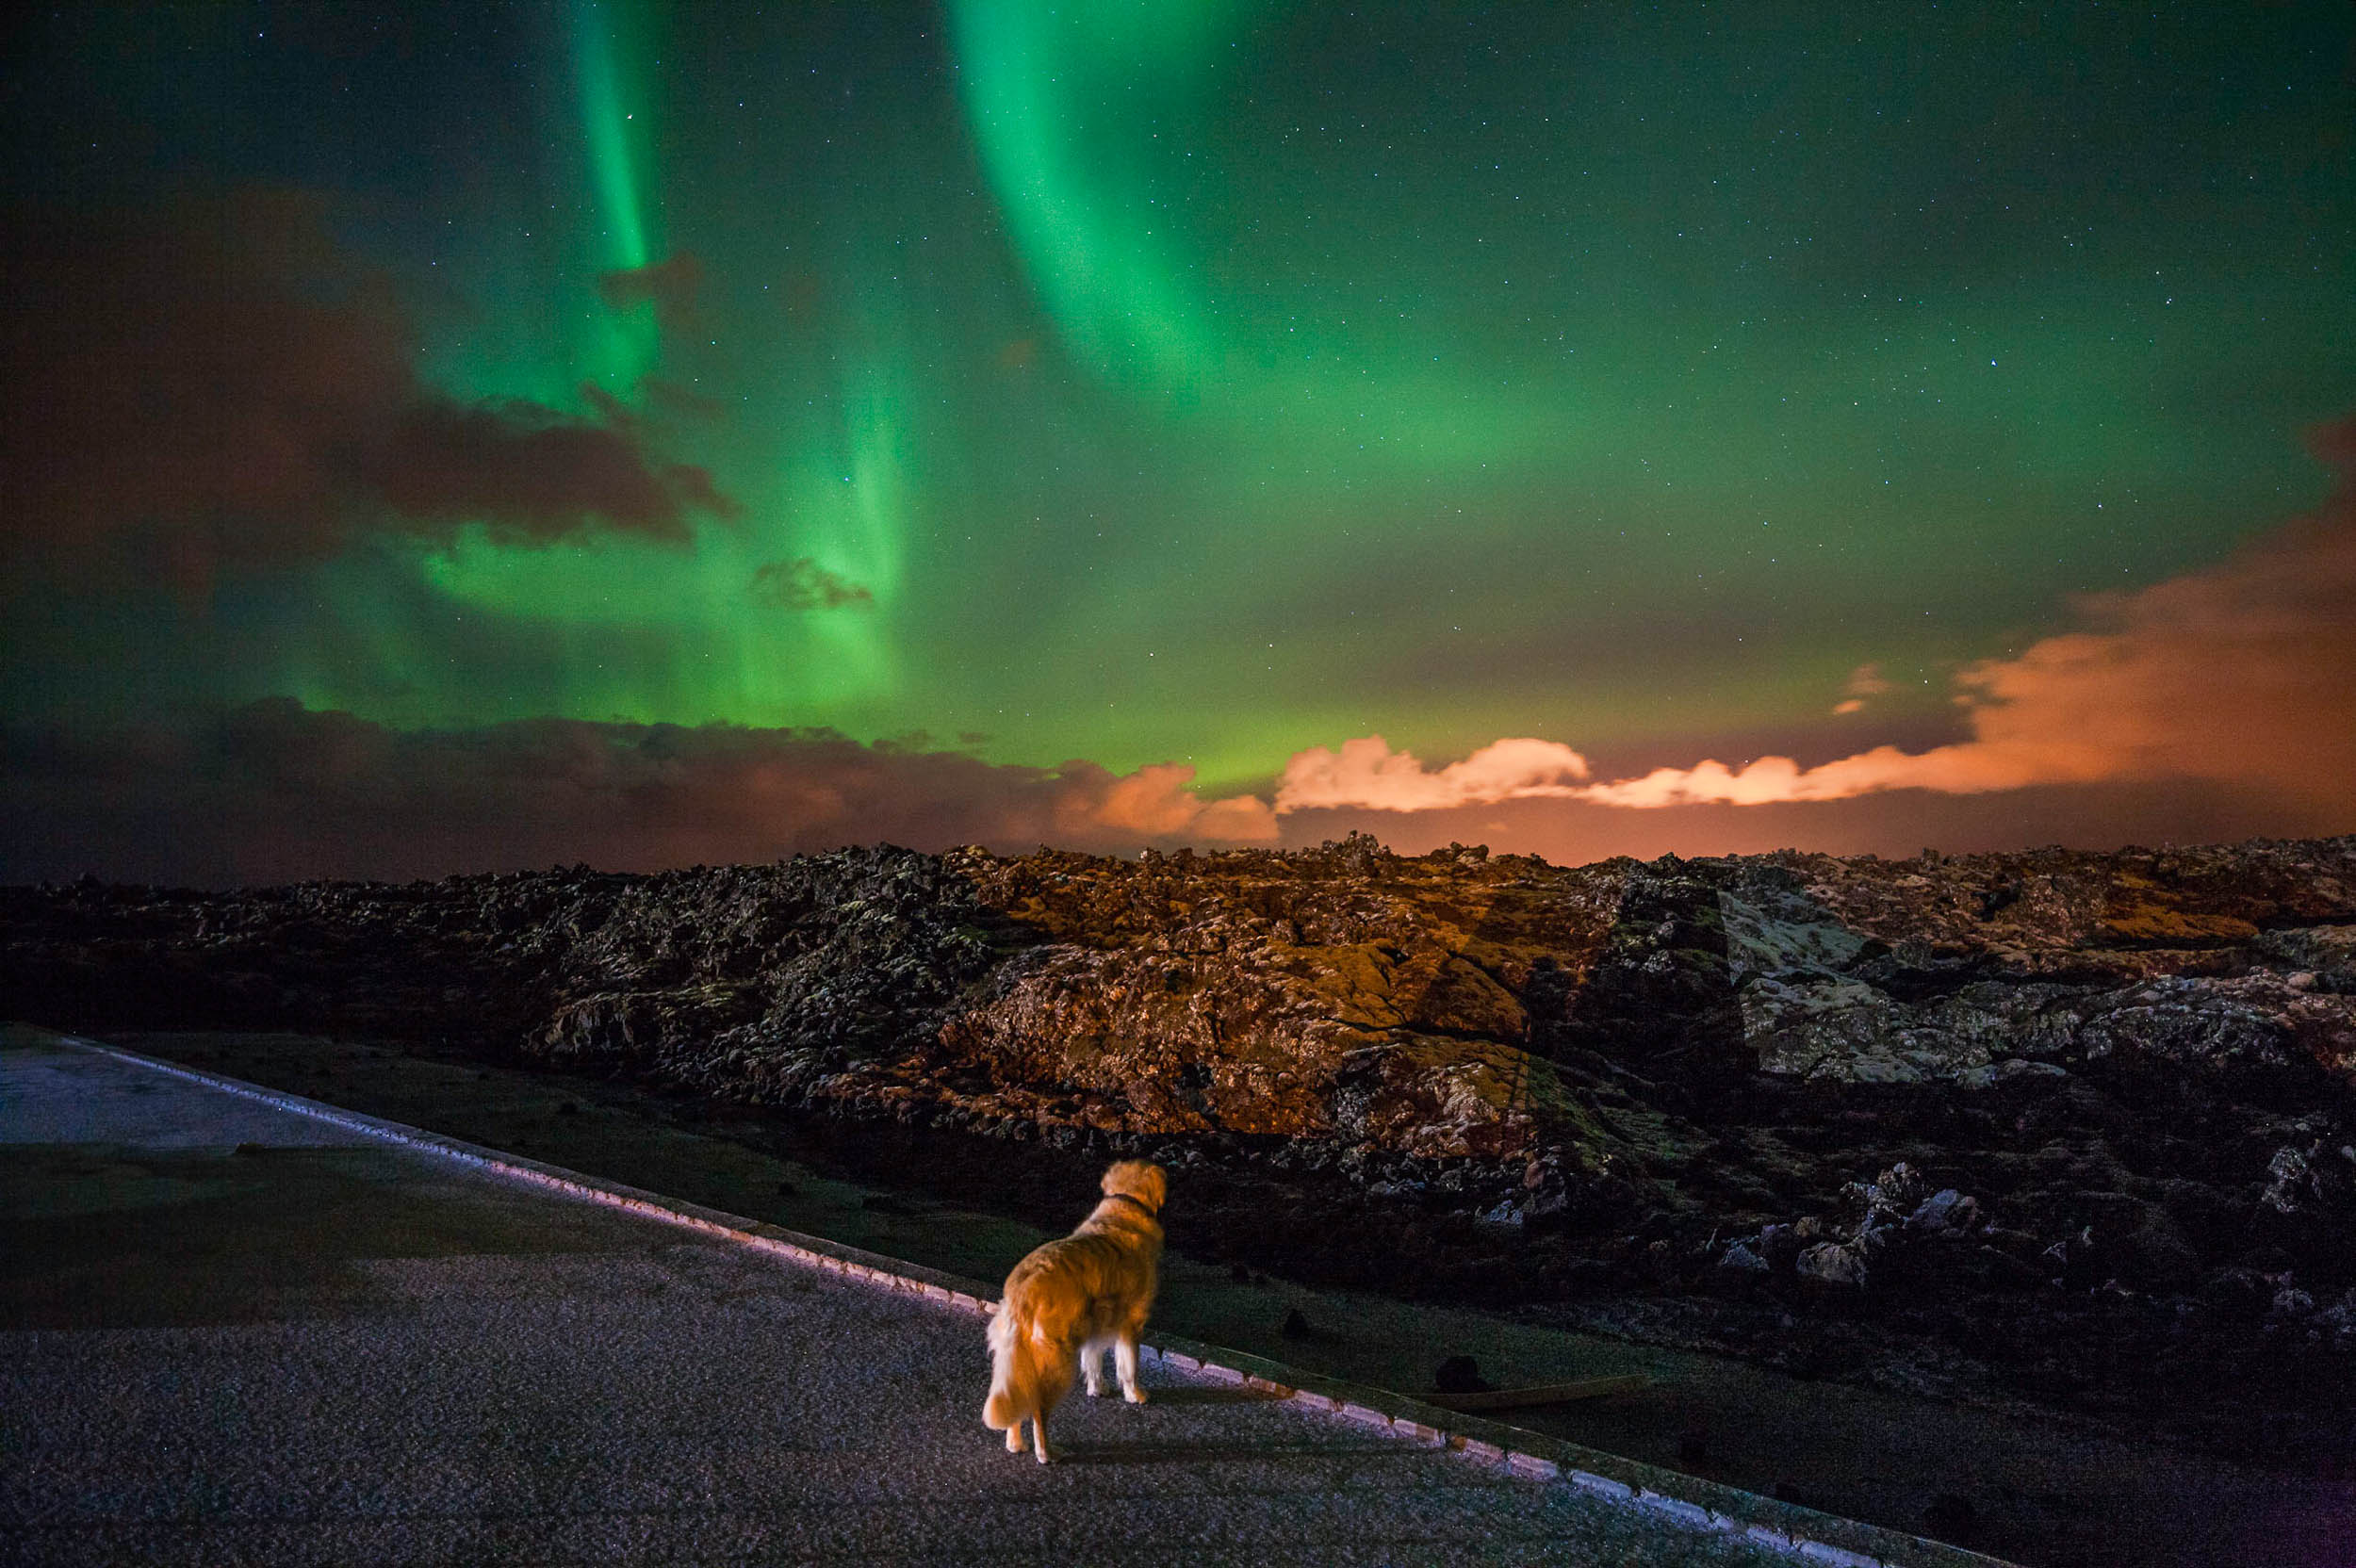 Max watching the Aurora Borealis from Northern Light Inn, Grinda